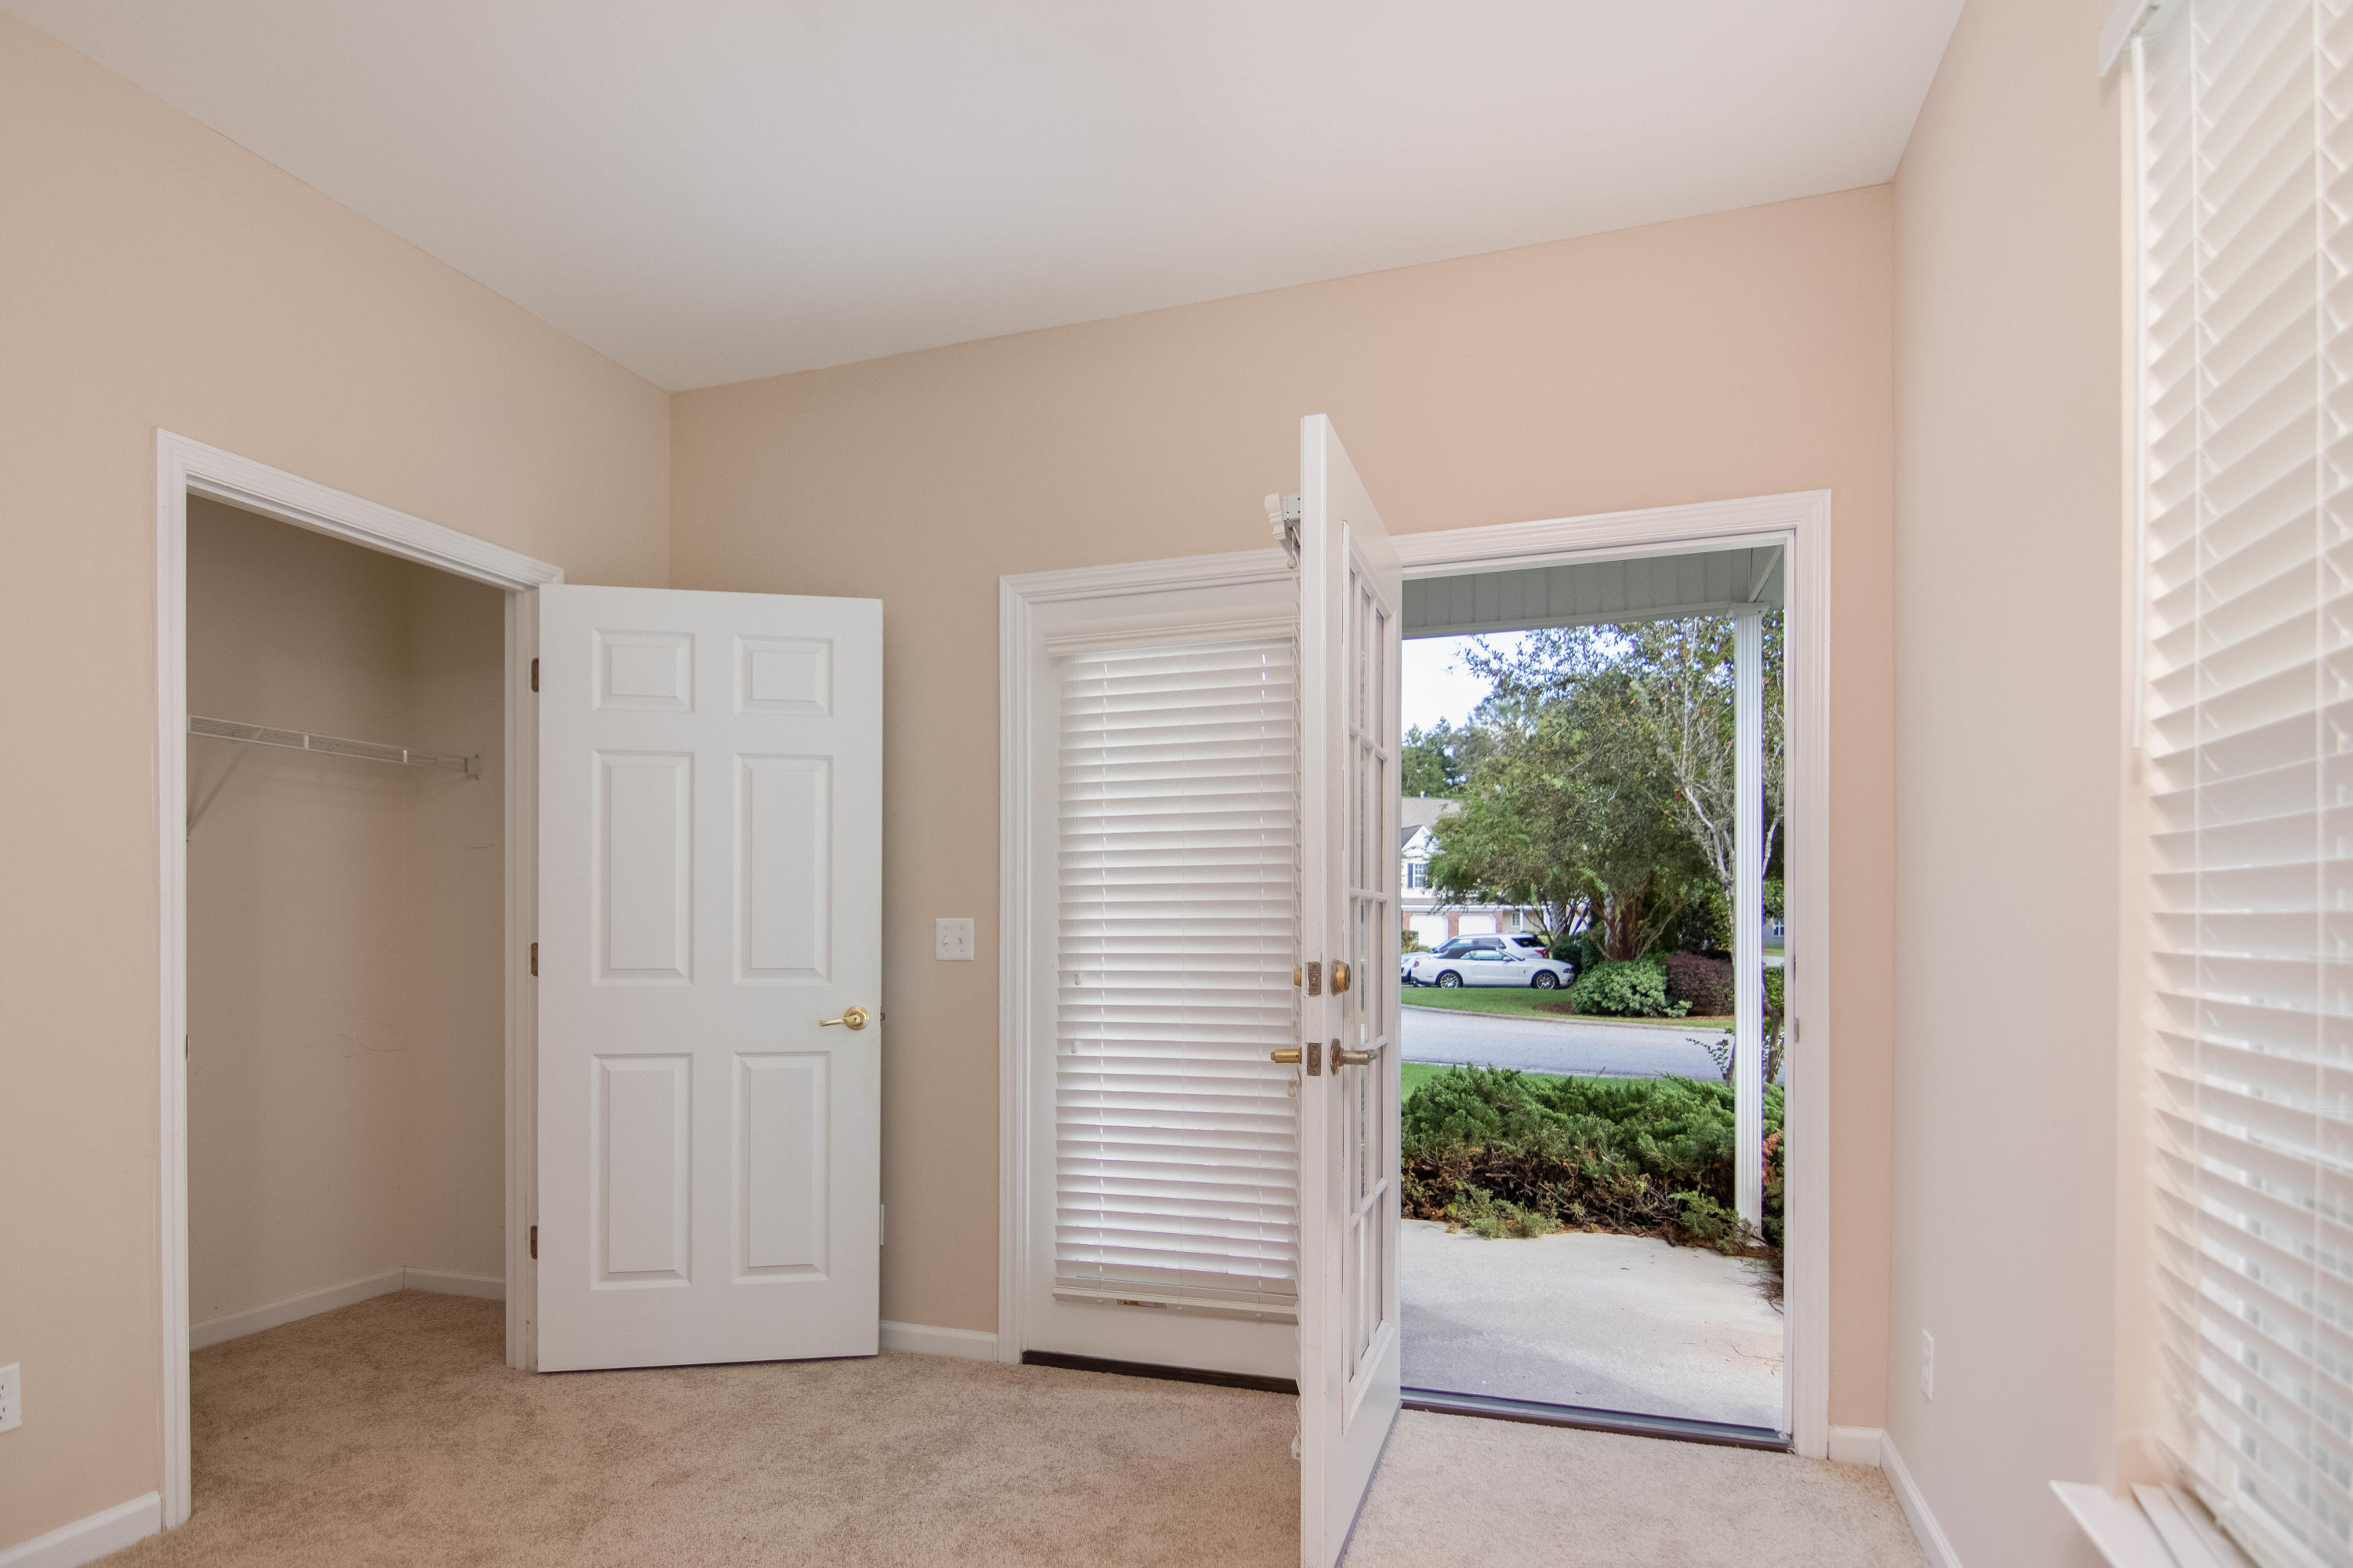 Coosaw Commons Homes For Sale - 8703 Grassy Oak, North Charleston, SC - 15